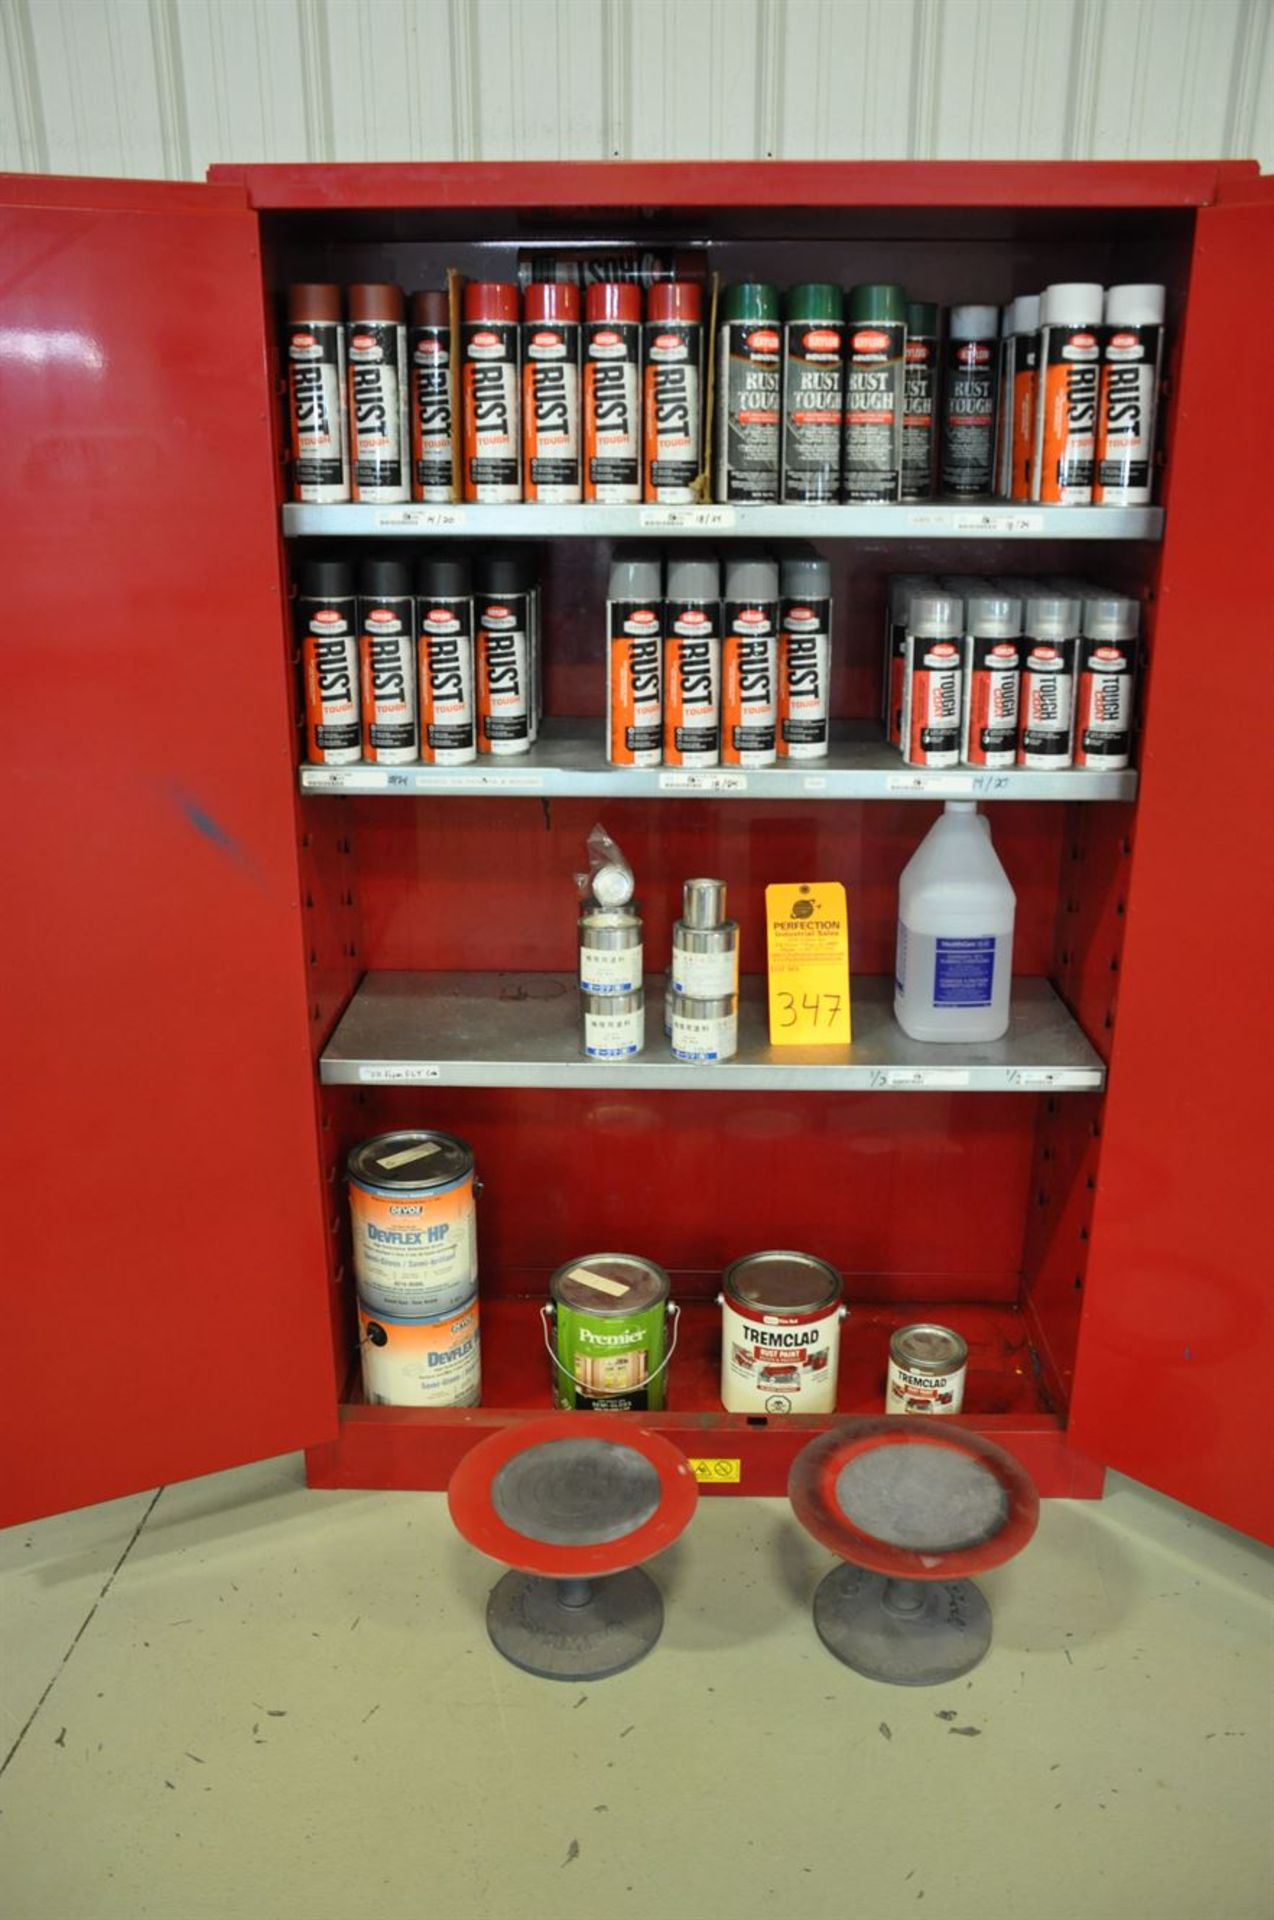 (14) cans of Krylon rust primer, (20) cans of top coat lacquer, Approx. (90) cans of assorted rust